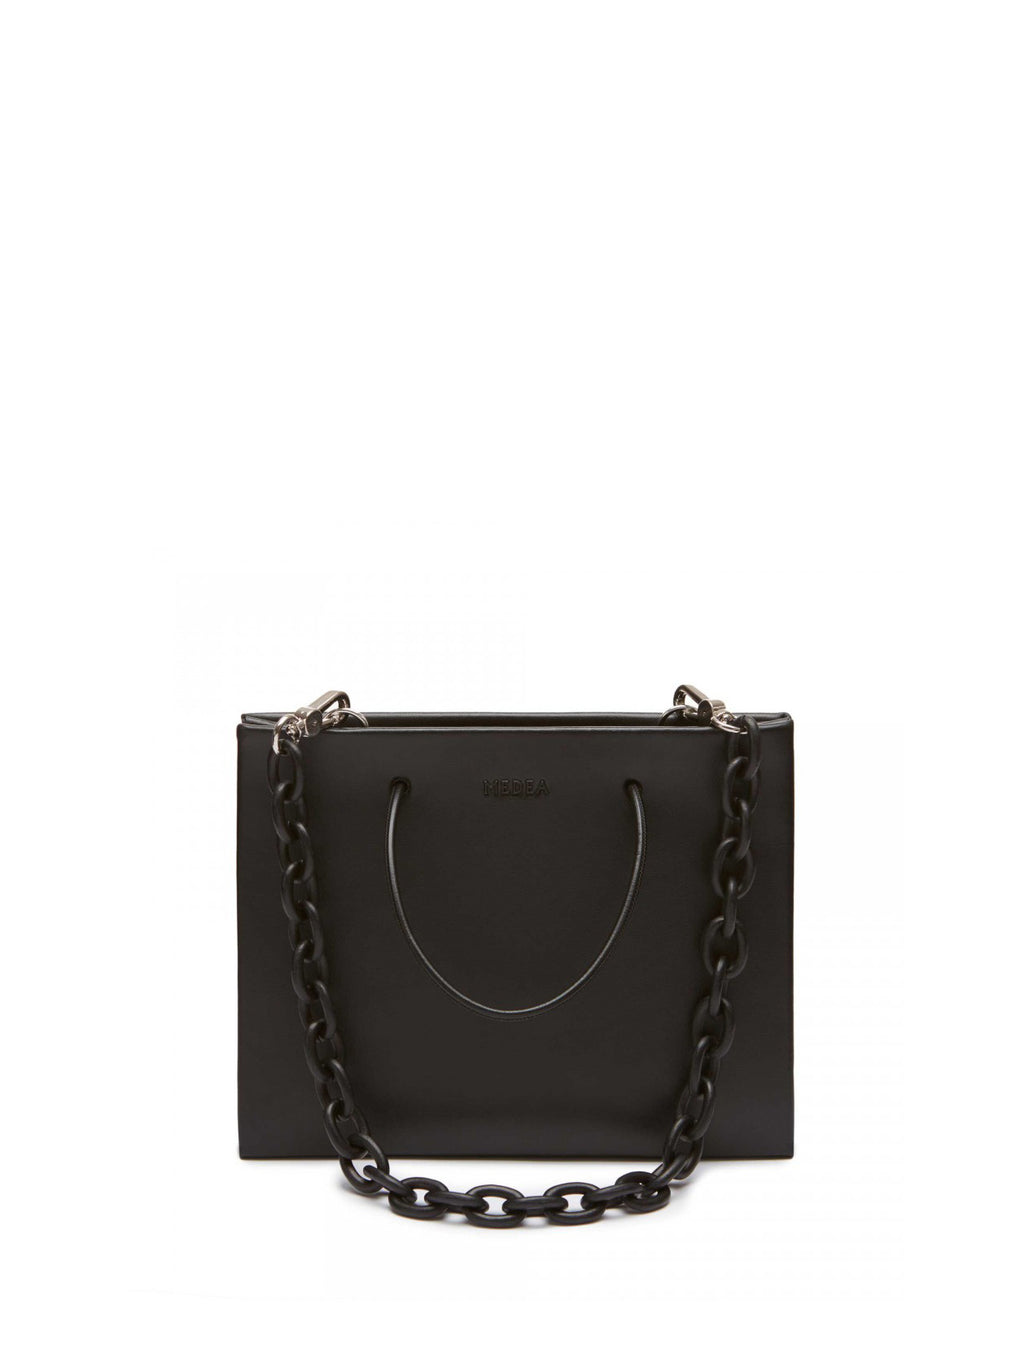 Hanna Leather Chain Bag - Black